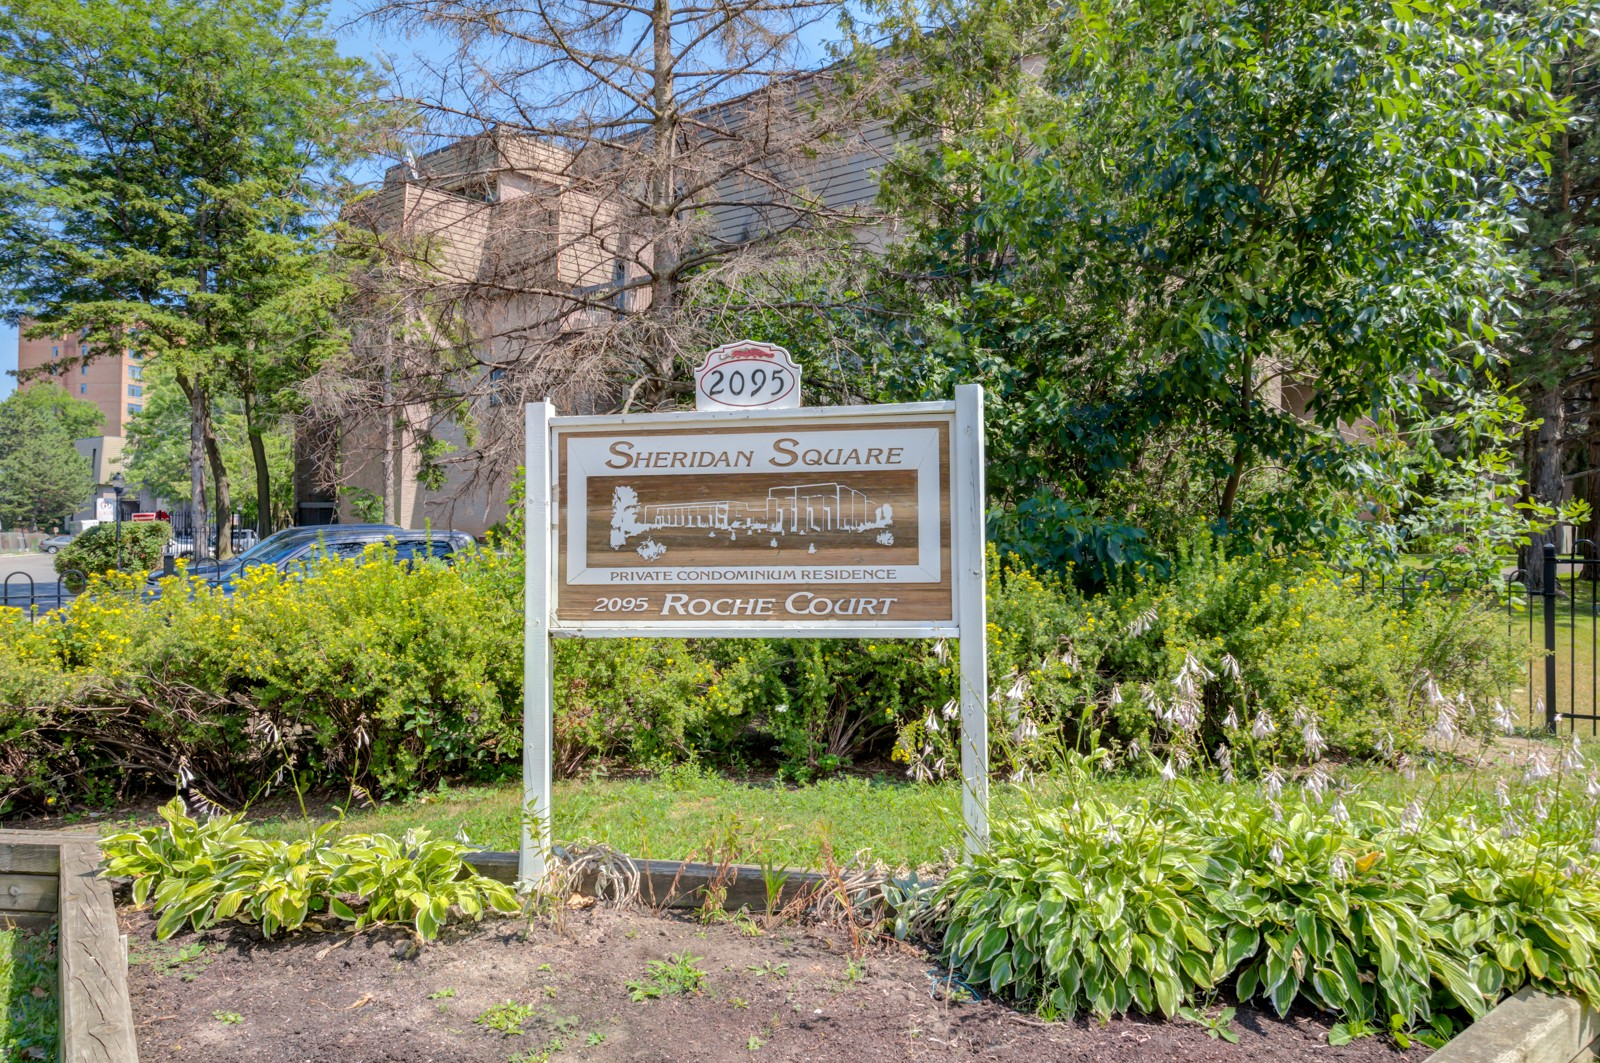 2095 Roche Court Townhouses at 2095 Roche Crt, Mississauga 1